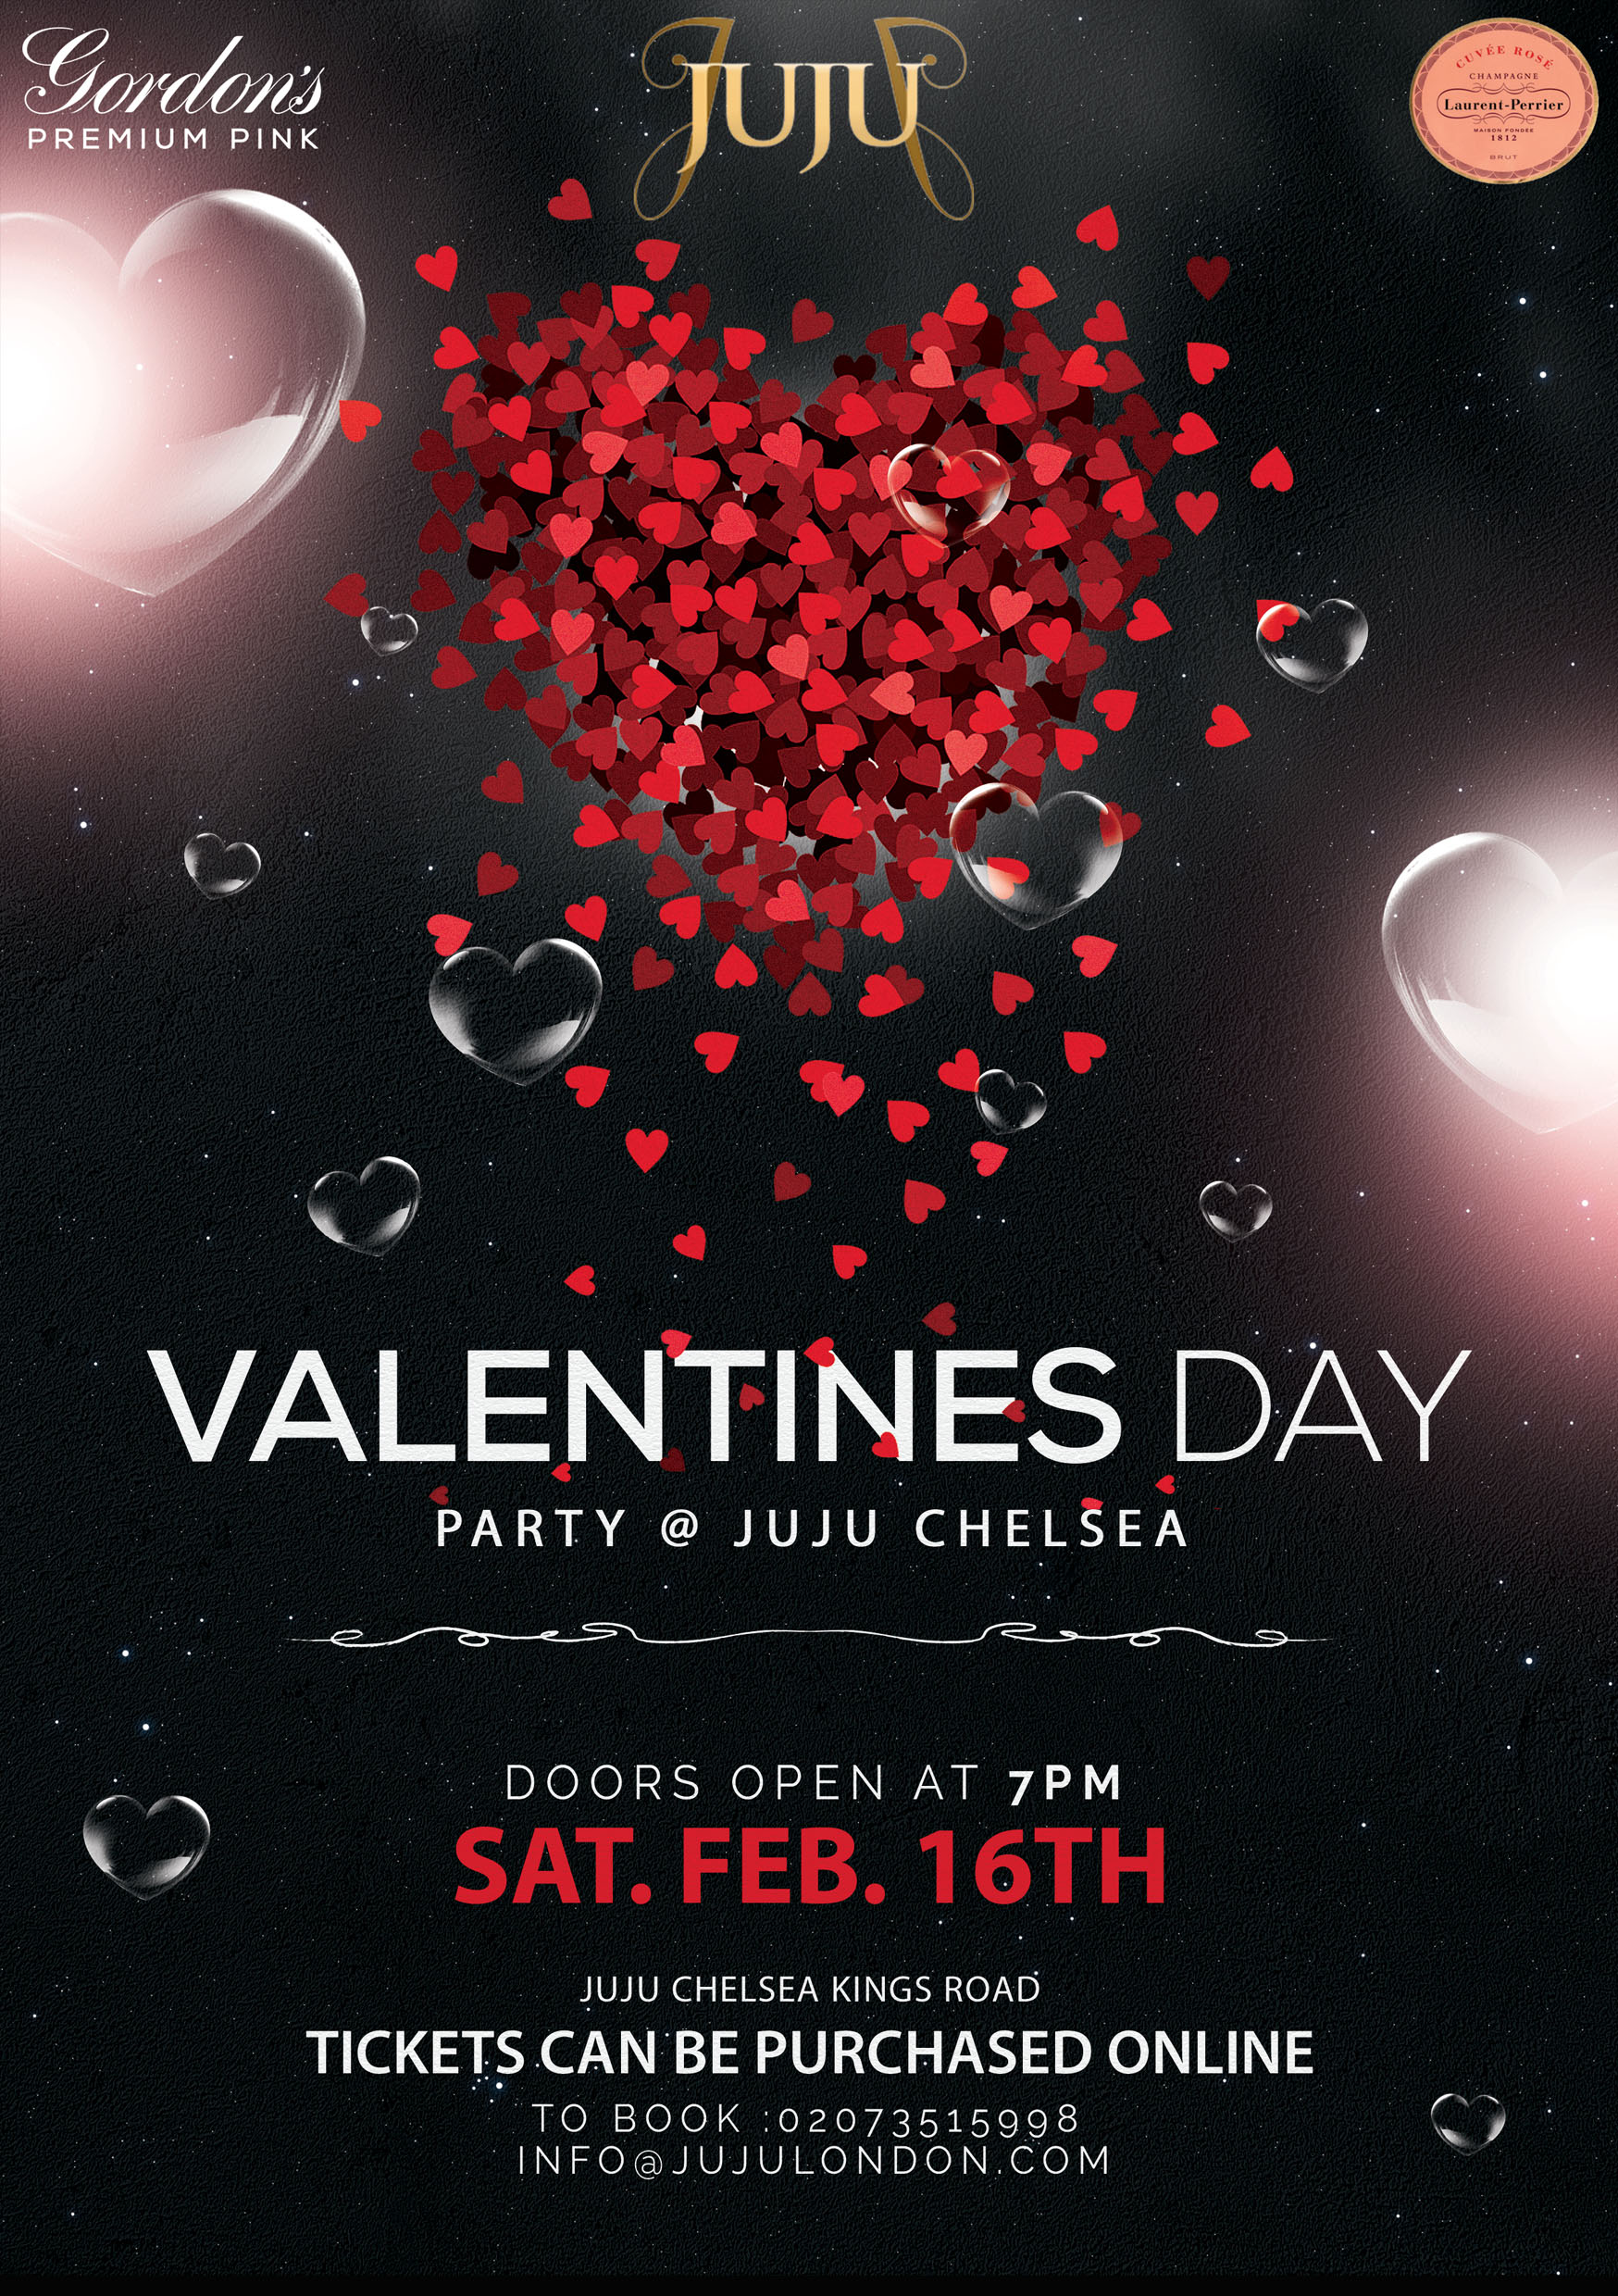 Valentines Day Party at JuJu Chelsea with Free Glass of LP Rose Champagne and Gordons Pink Gin Cocktail